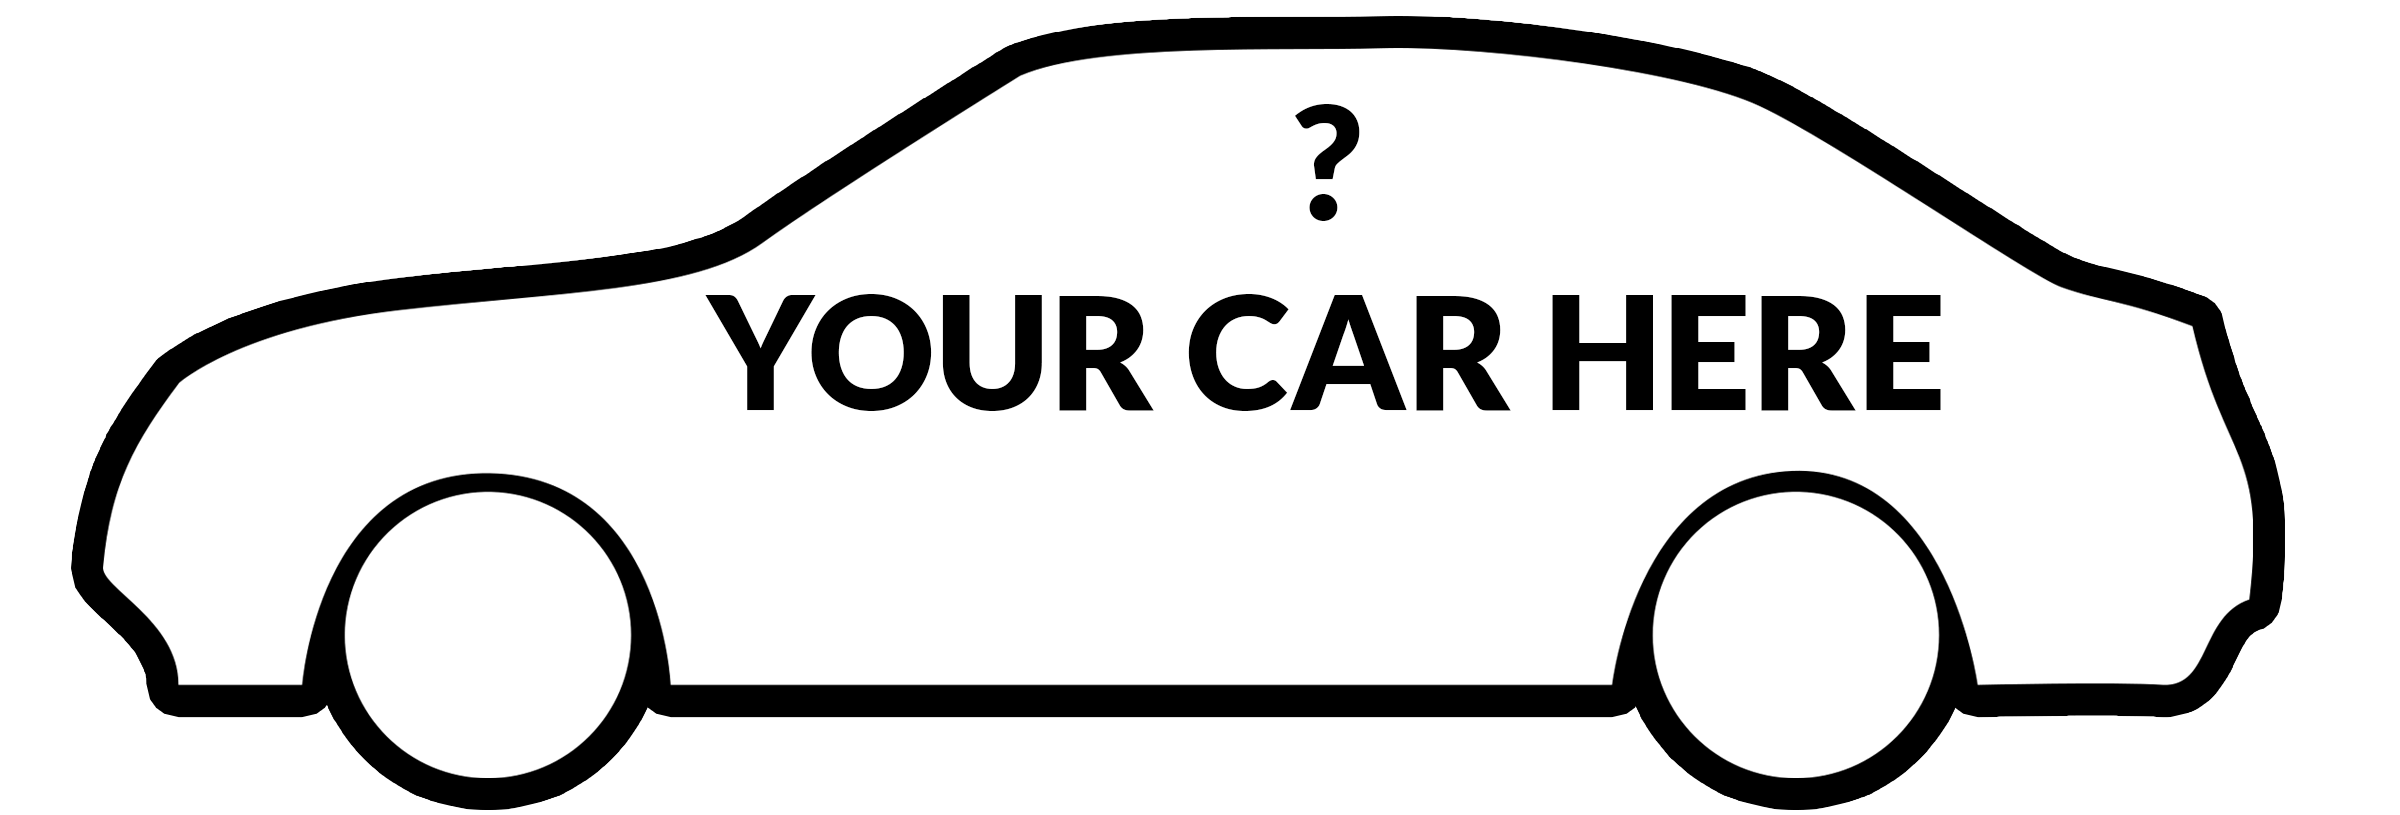 Car side profile clipart black and white clip royalty free library Free Car Profile Cliparts, Download Free Clip Art, Free Clip Art on ... clip royalty free library